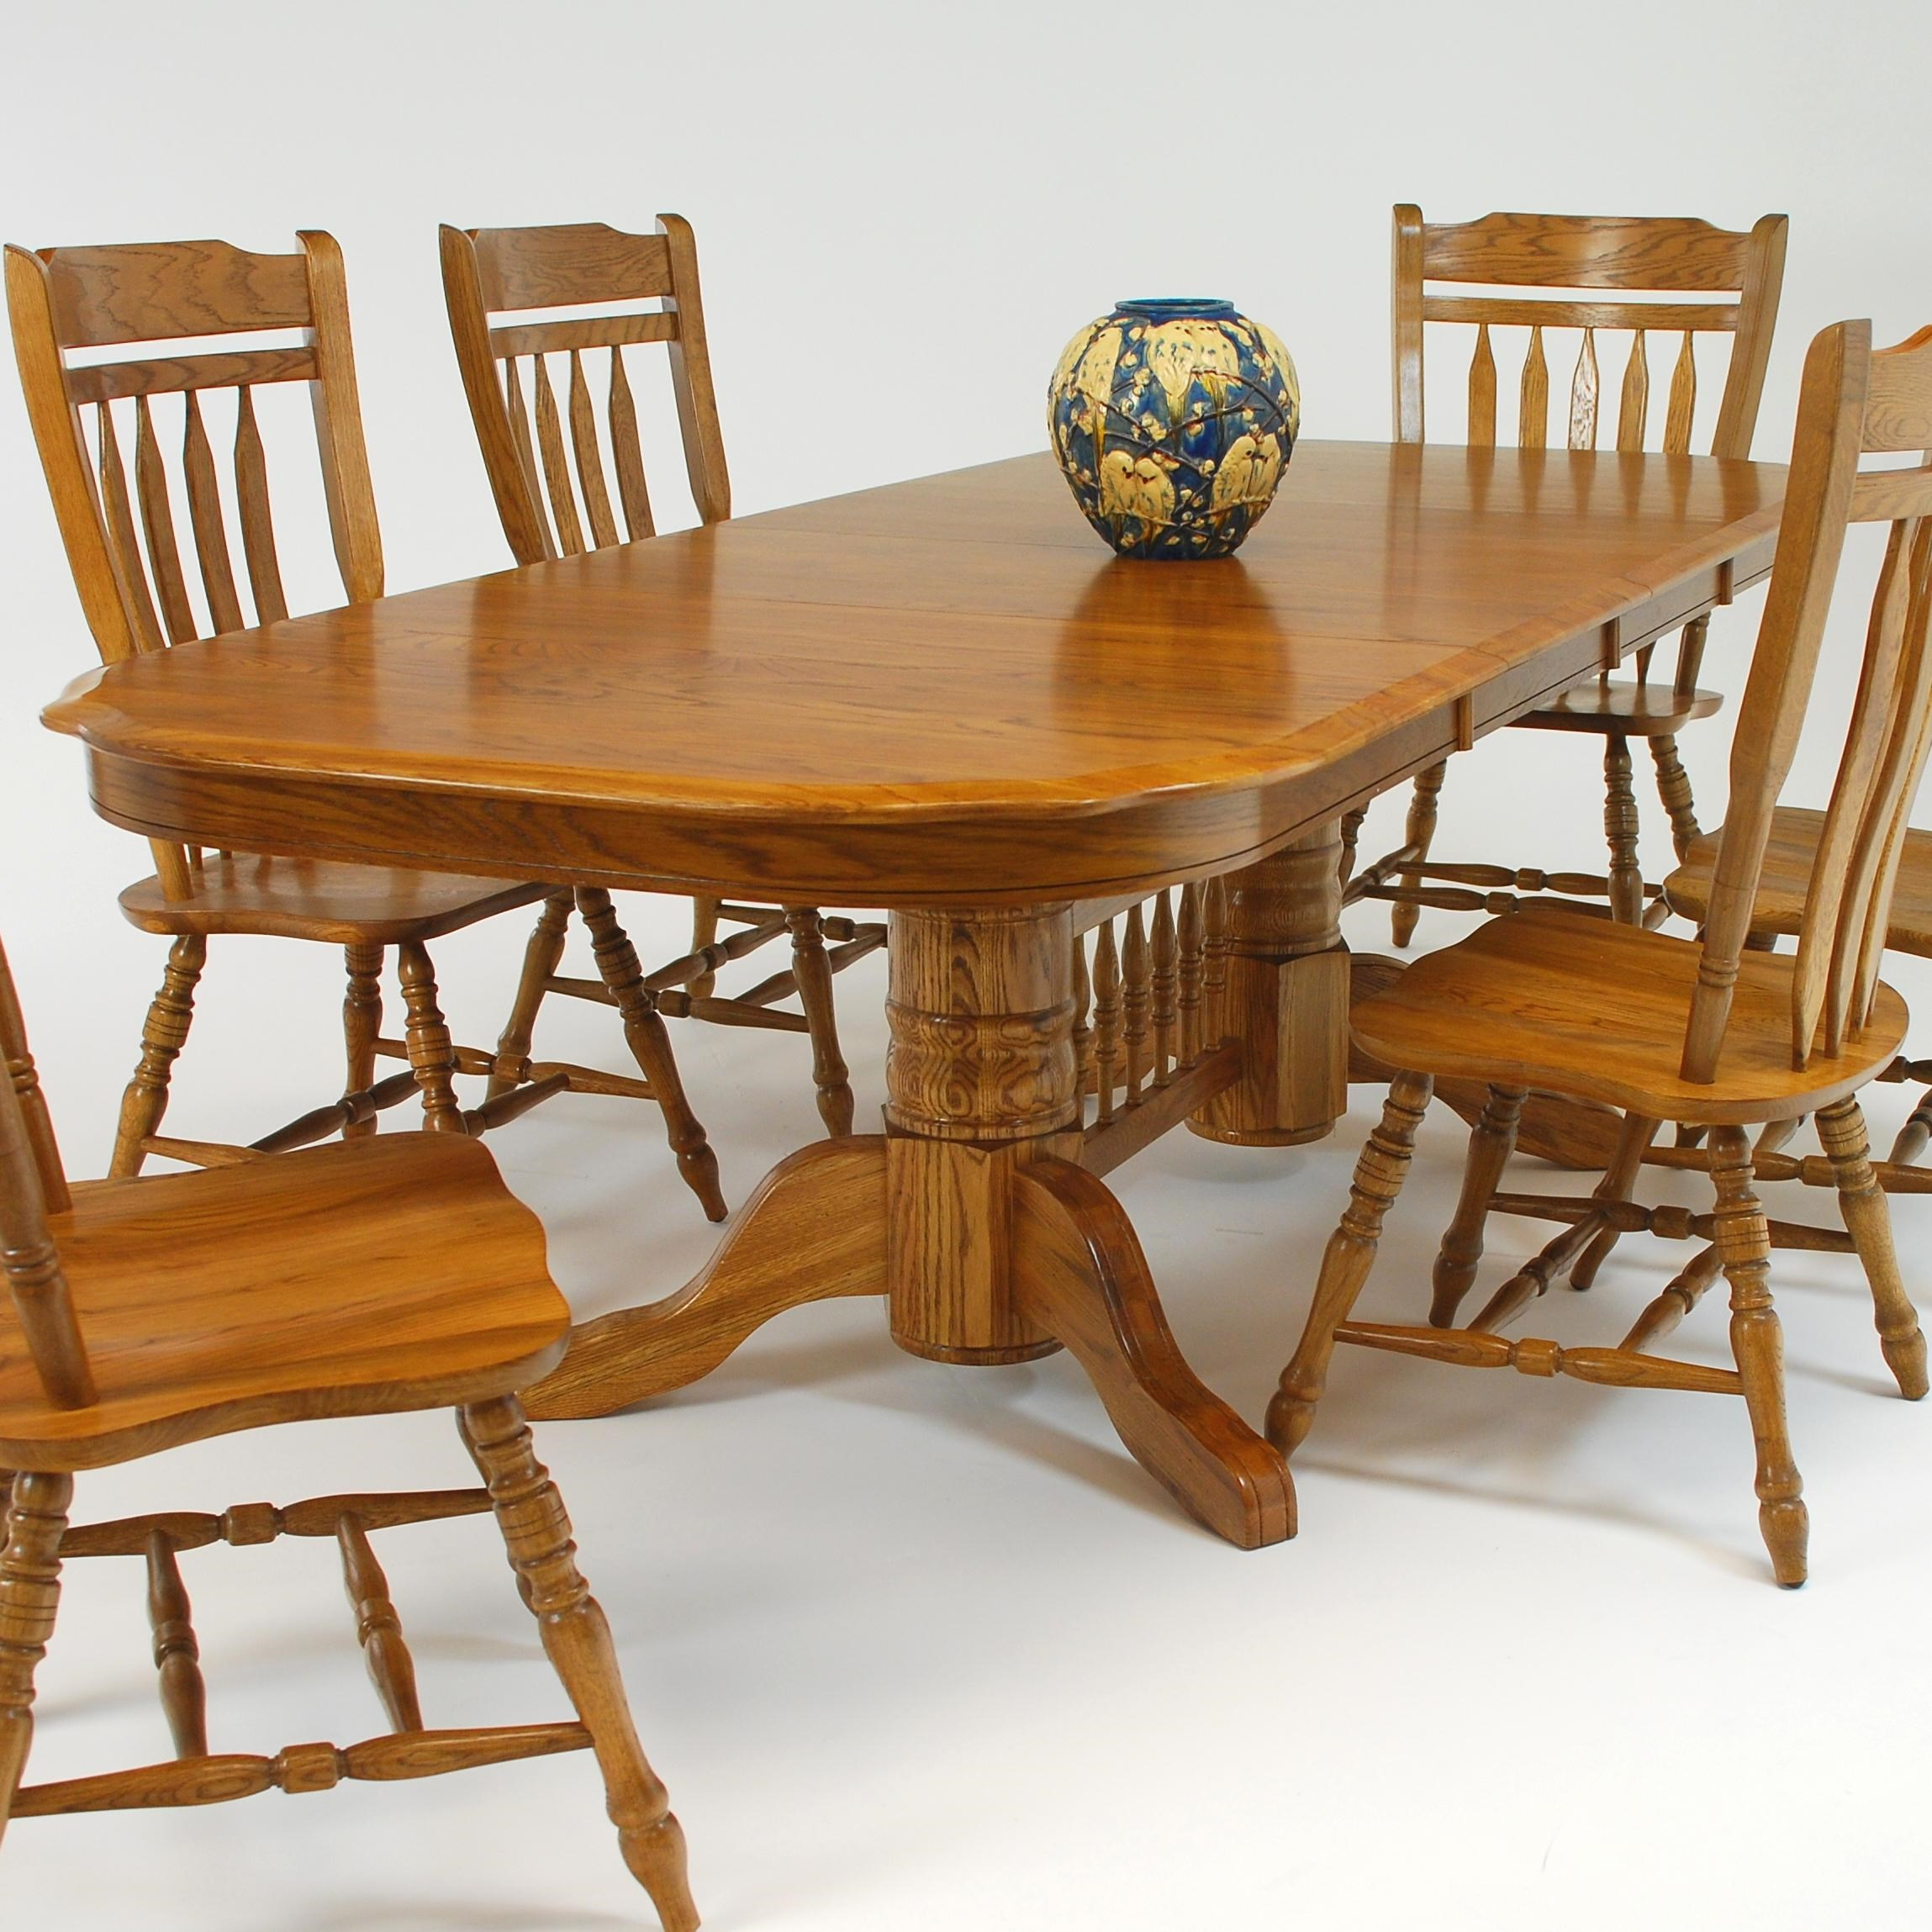 Merveilleux GS Furniture Classic Oak Trestle Dining Table With Two 18